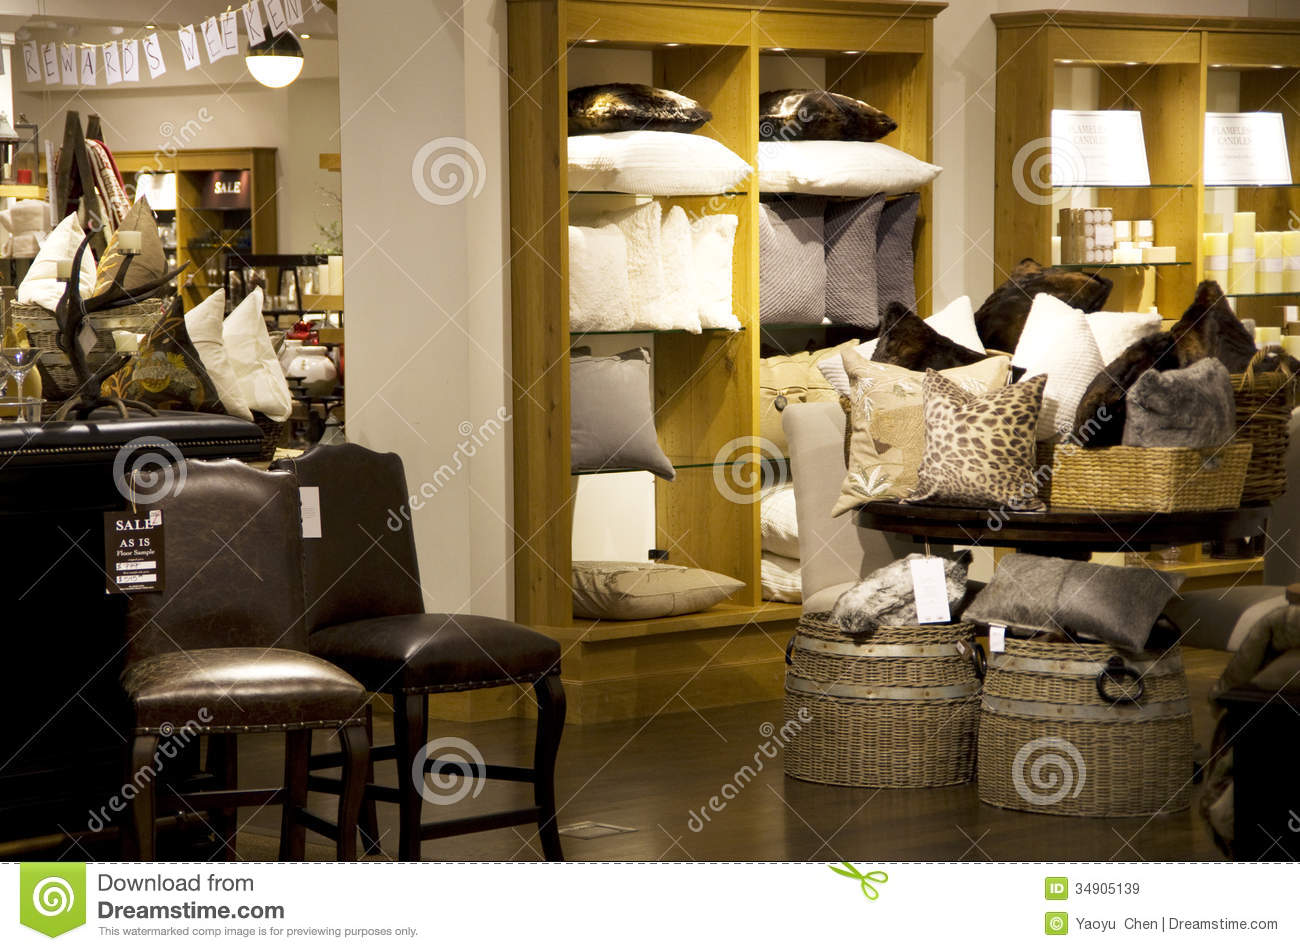 Home goods store stock image image of lighting decor for Decoration goods